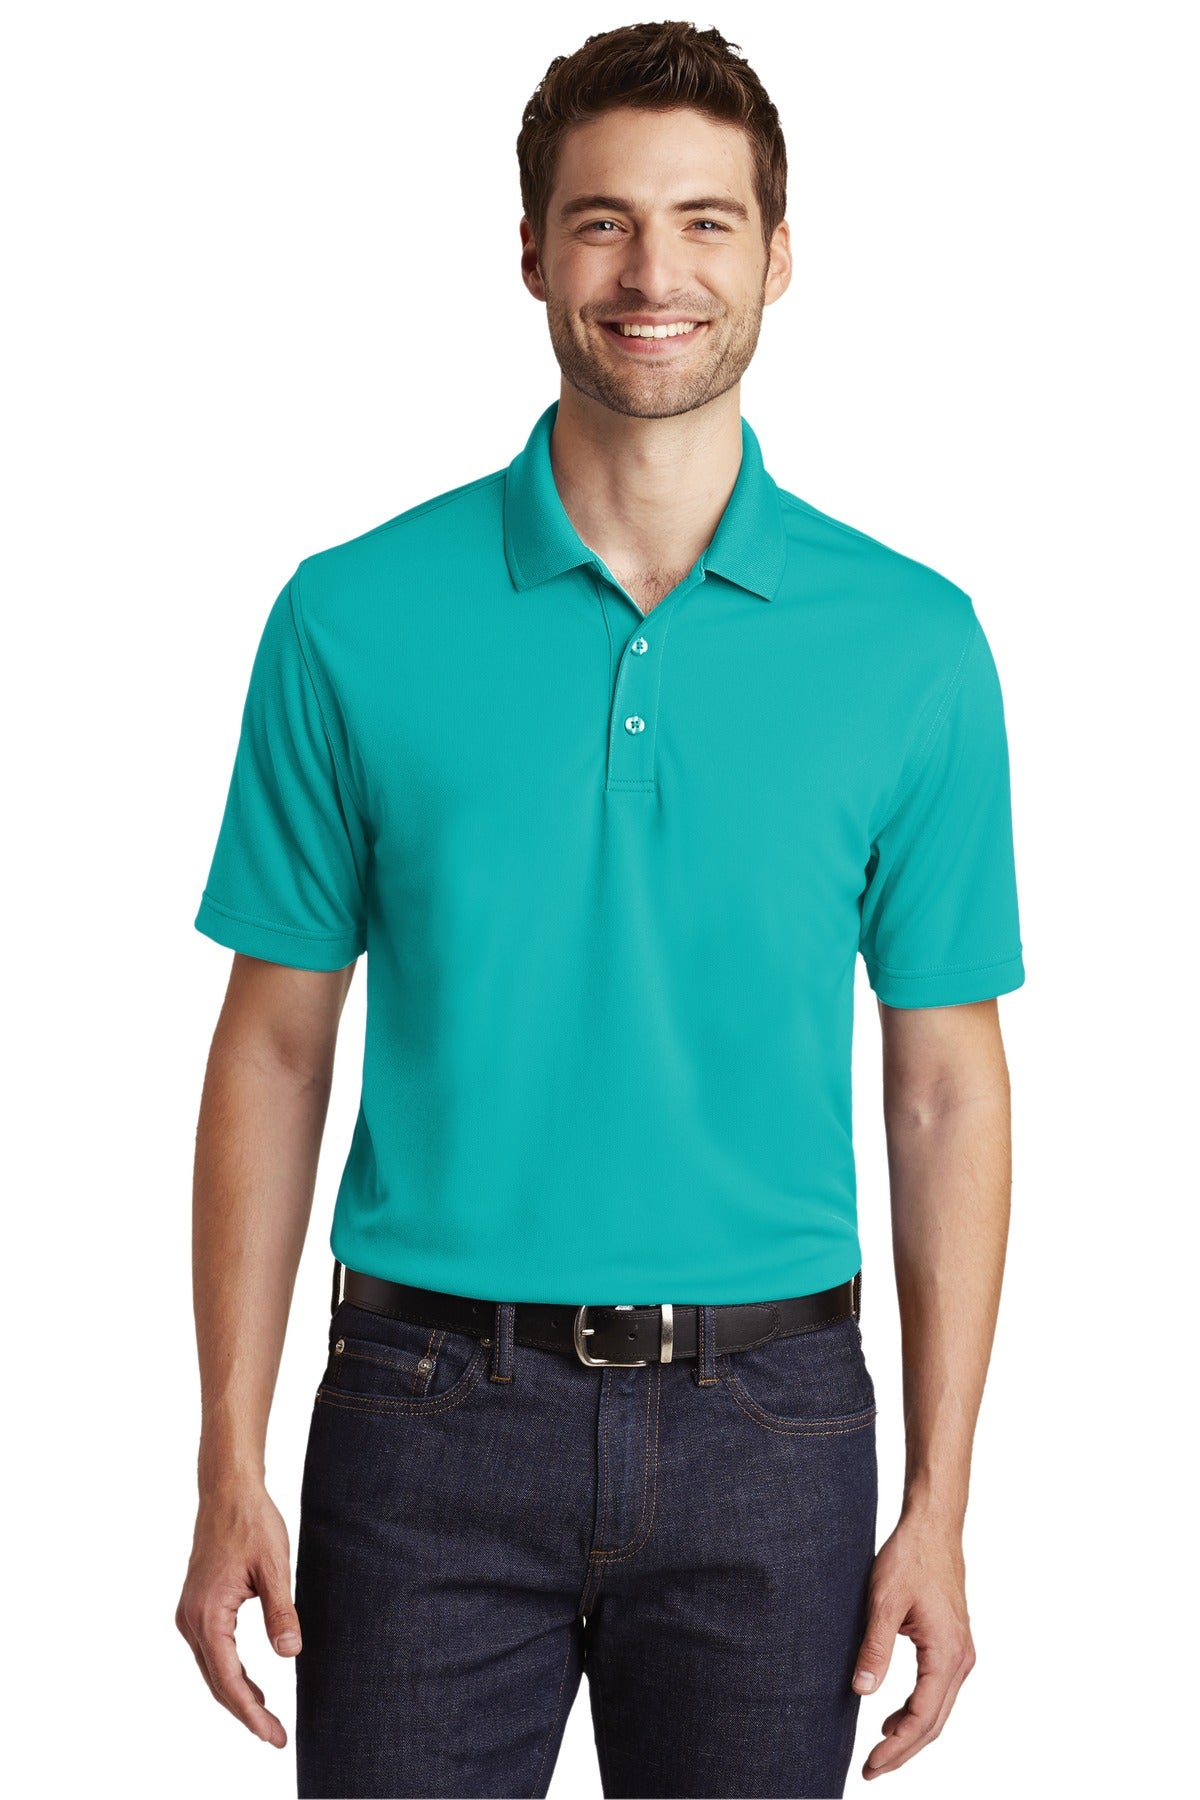 Stone Port Authority Heavyweight Cotton Pique Polo.